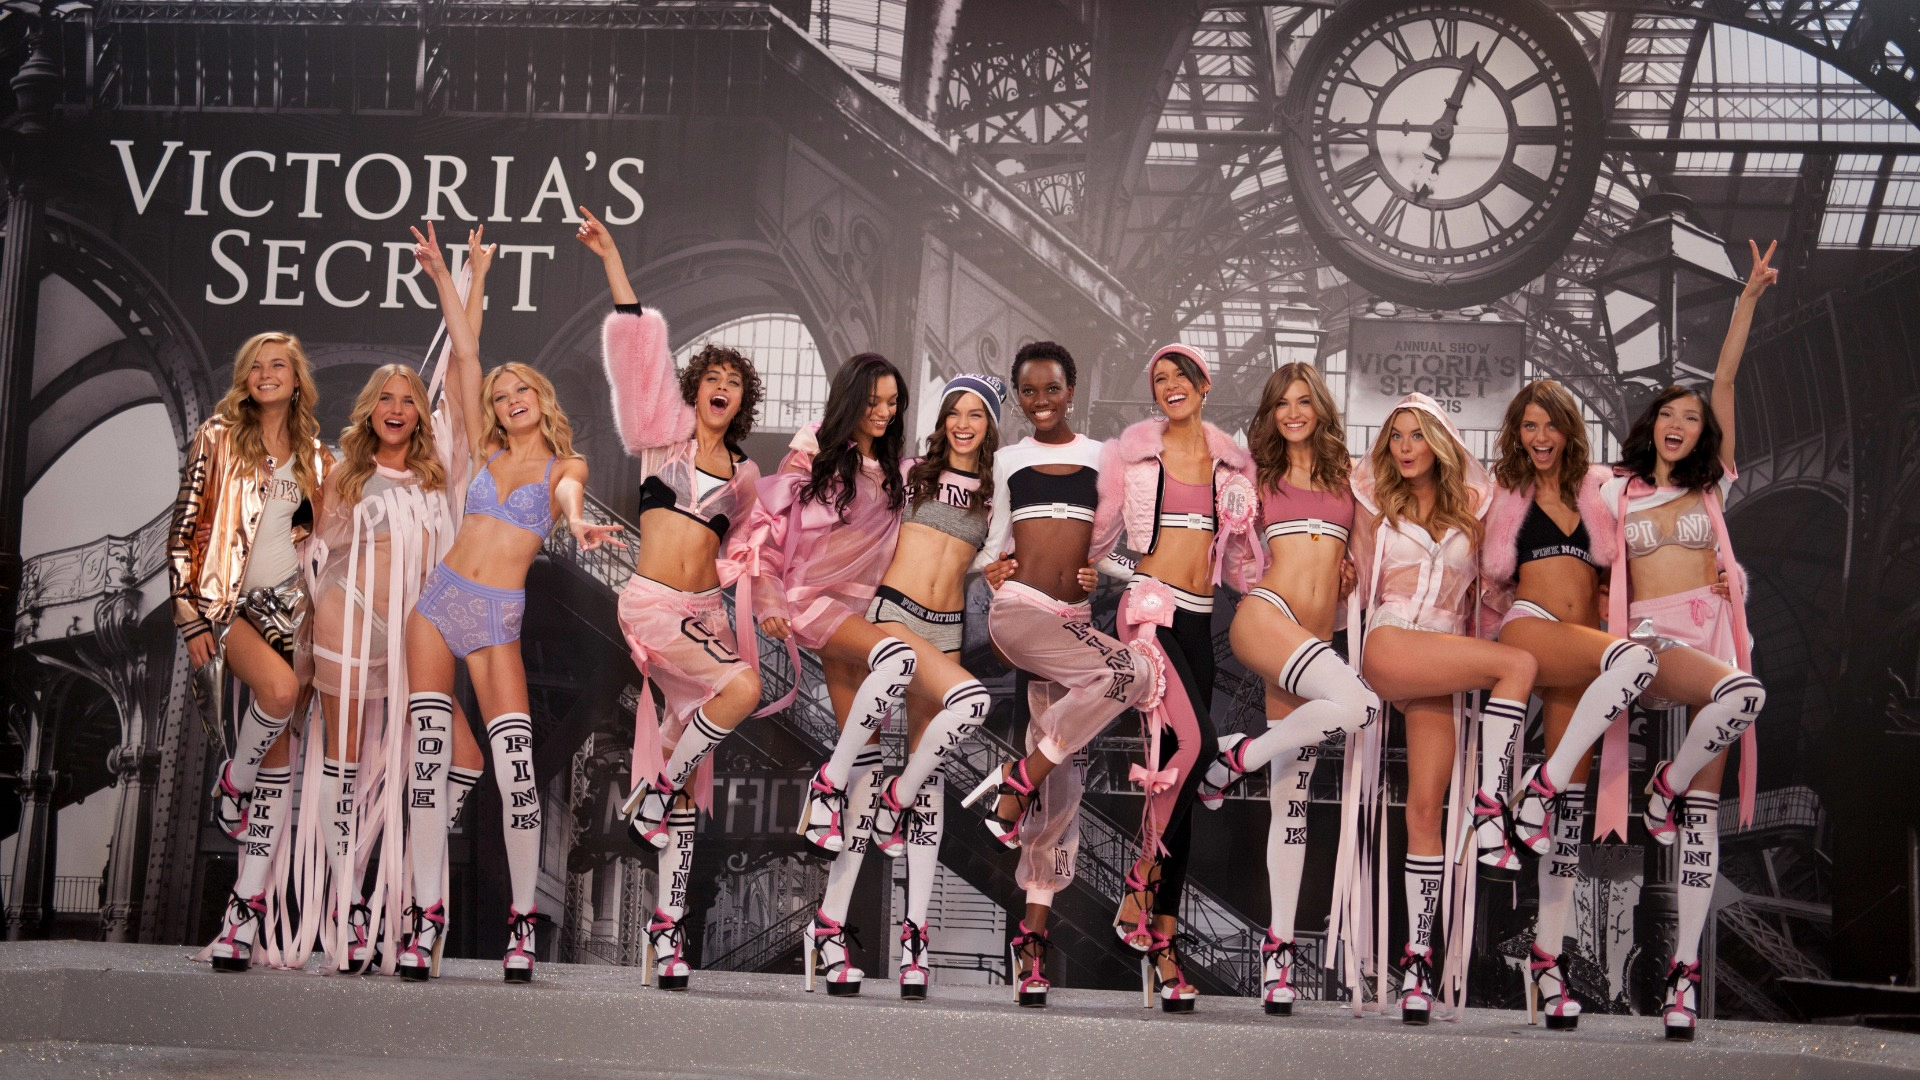 The PINK models pose together after the show.